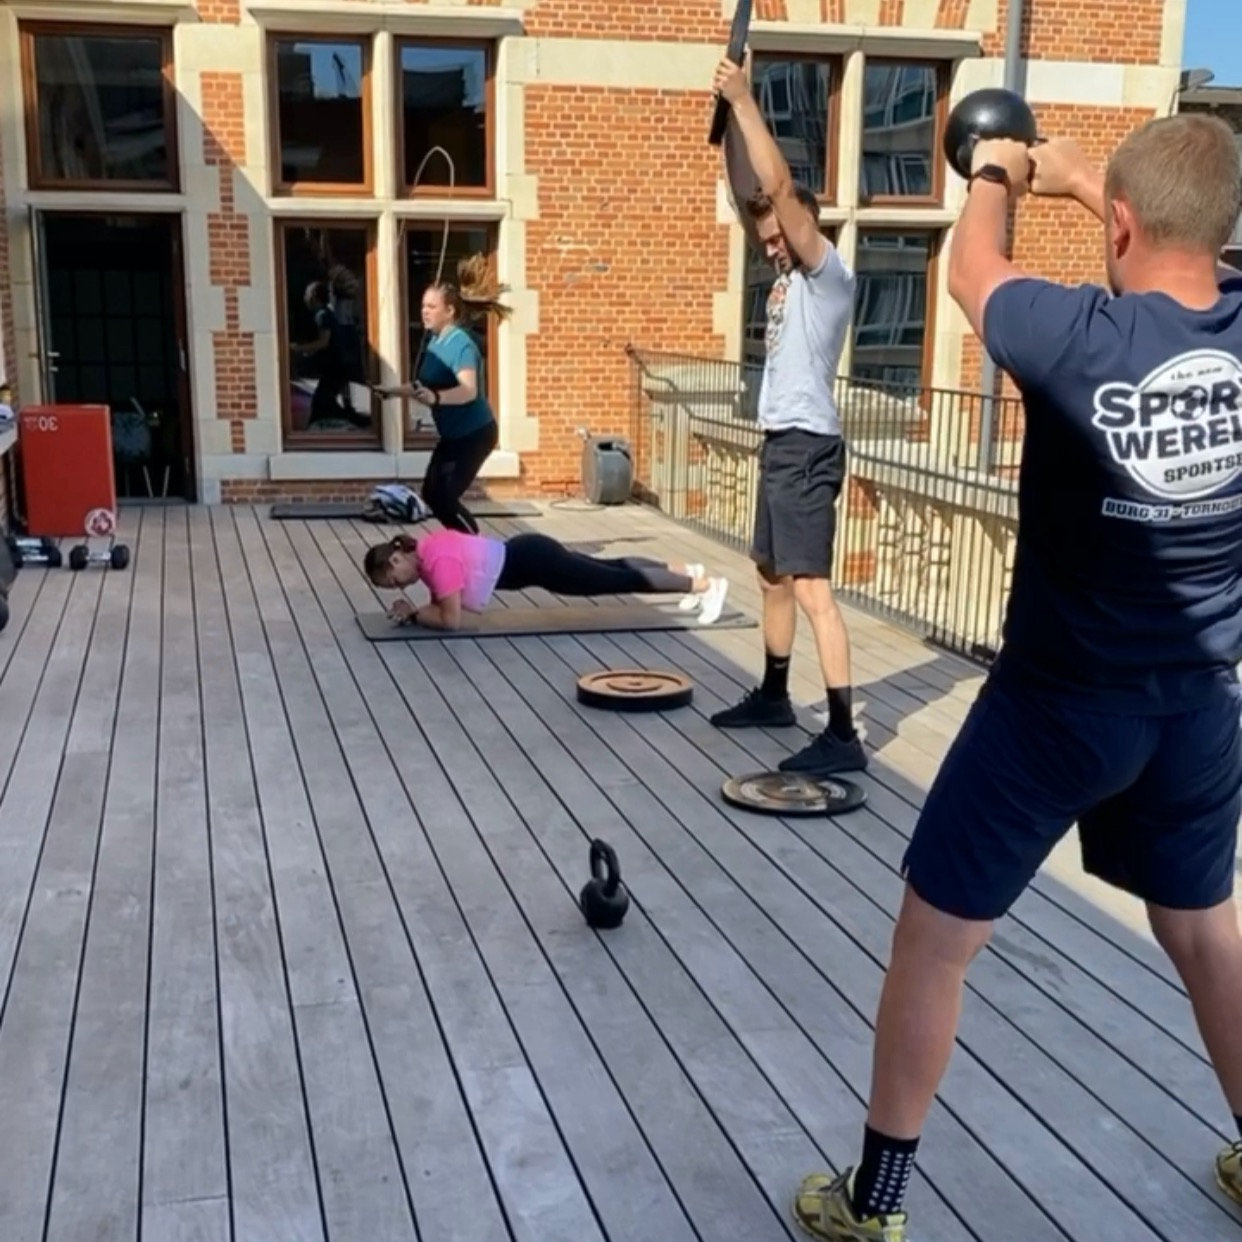 Small group workout (outdoor)